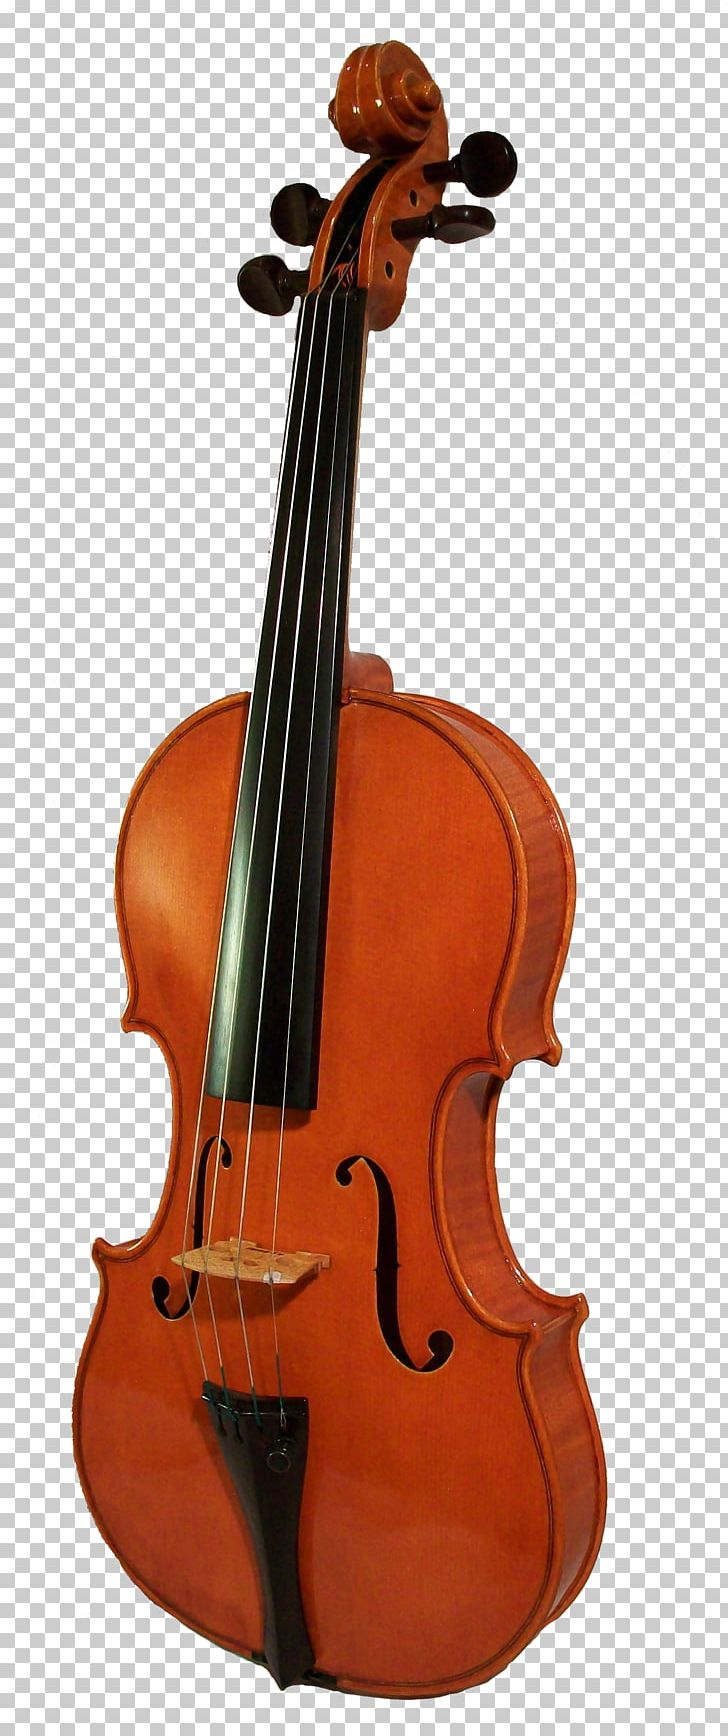 Violin Cello Musical Instrument PNG, Clipart, Acoustic Guitar, Bass.